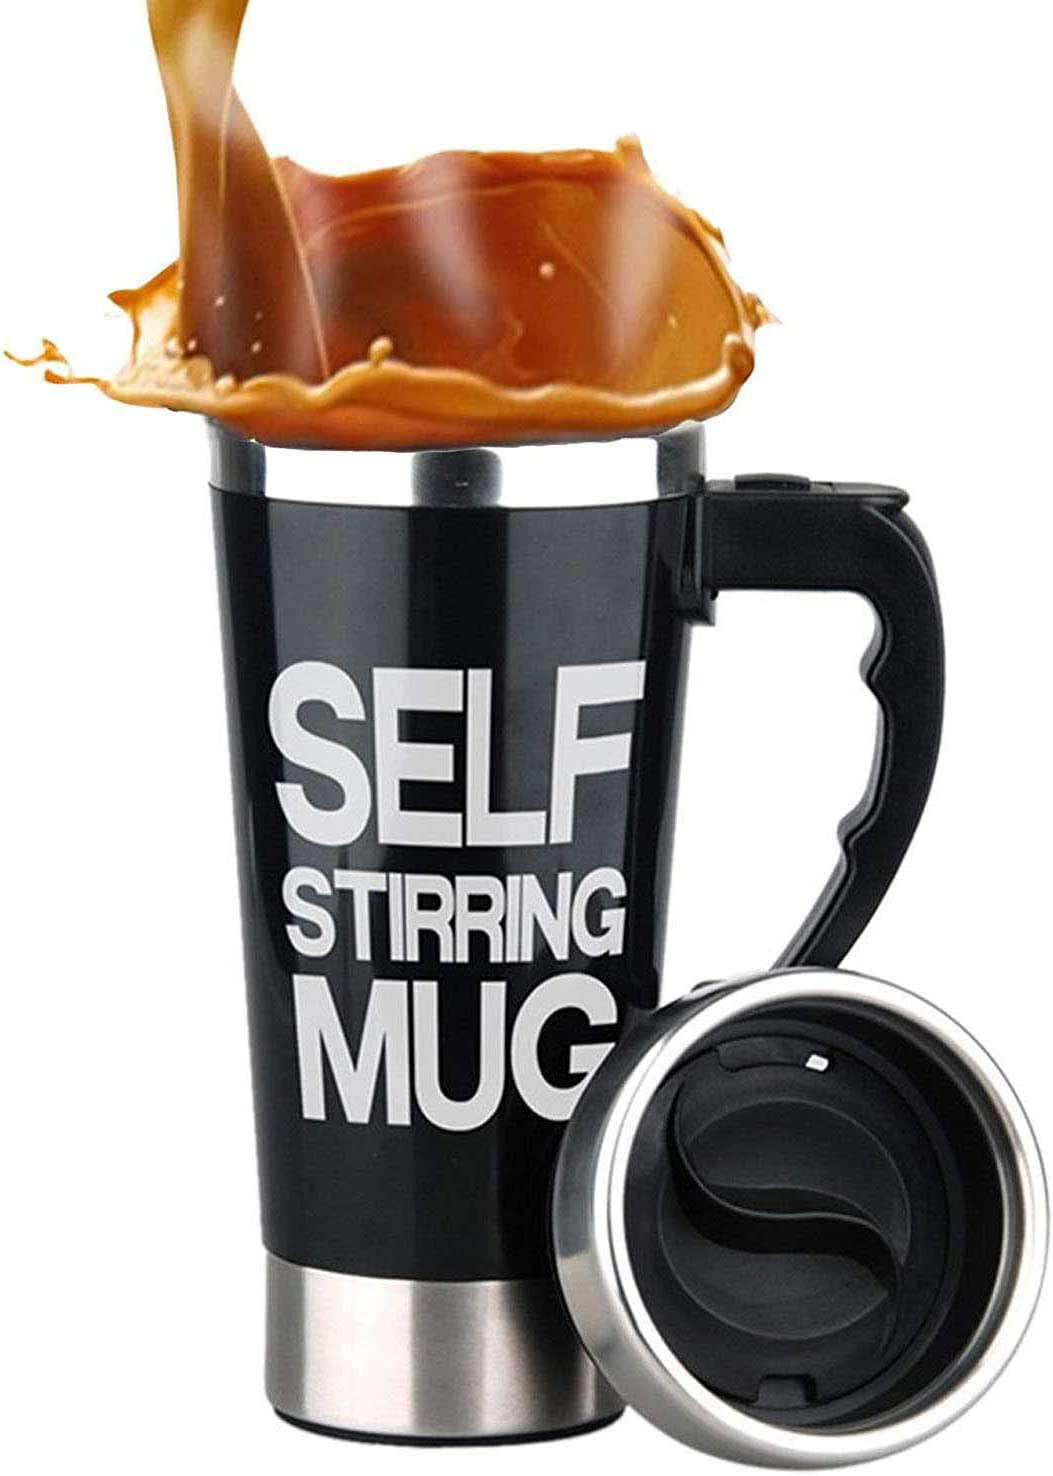 Mengshen Cafe Tazas Portable Self Stirring Mug Steel Stainless Shaker Auto Mixing Water Tea Coffee Cup Perfect for Office Home Travel Gift 450ml, A008A Black